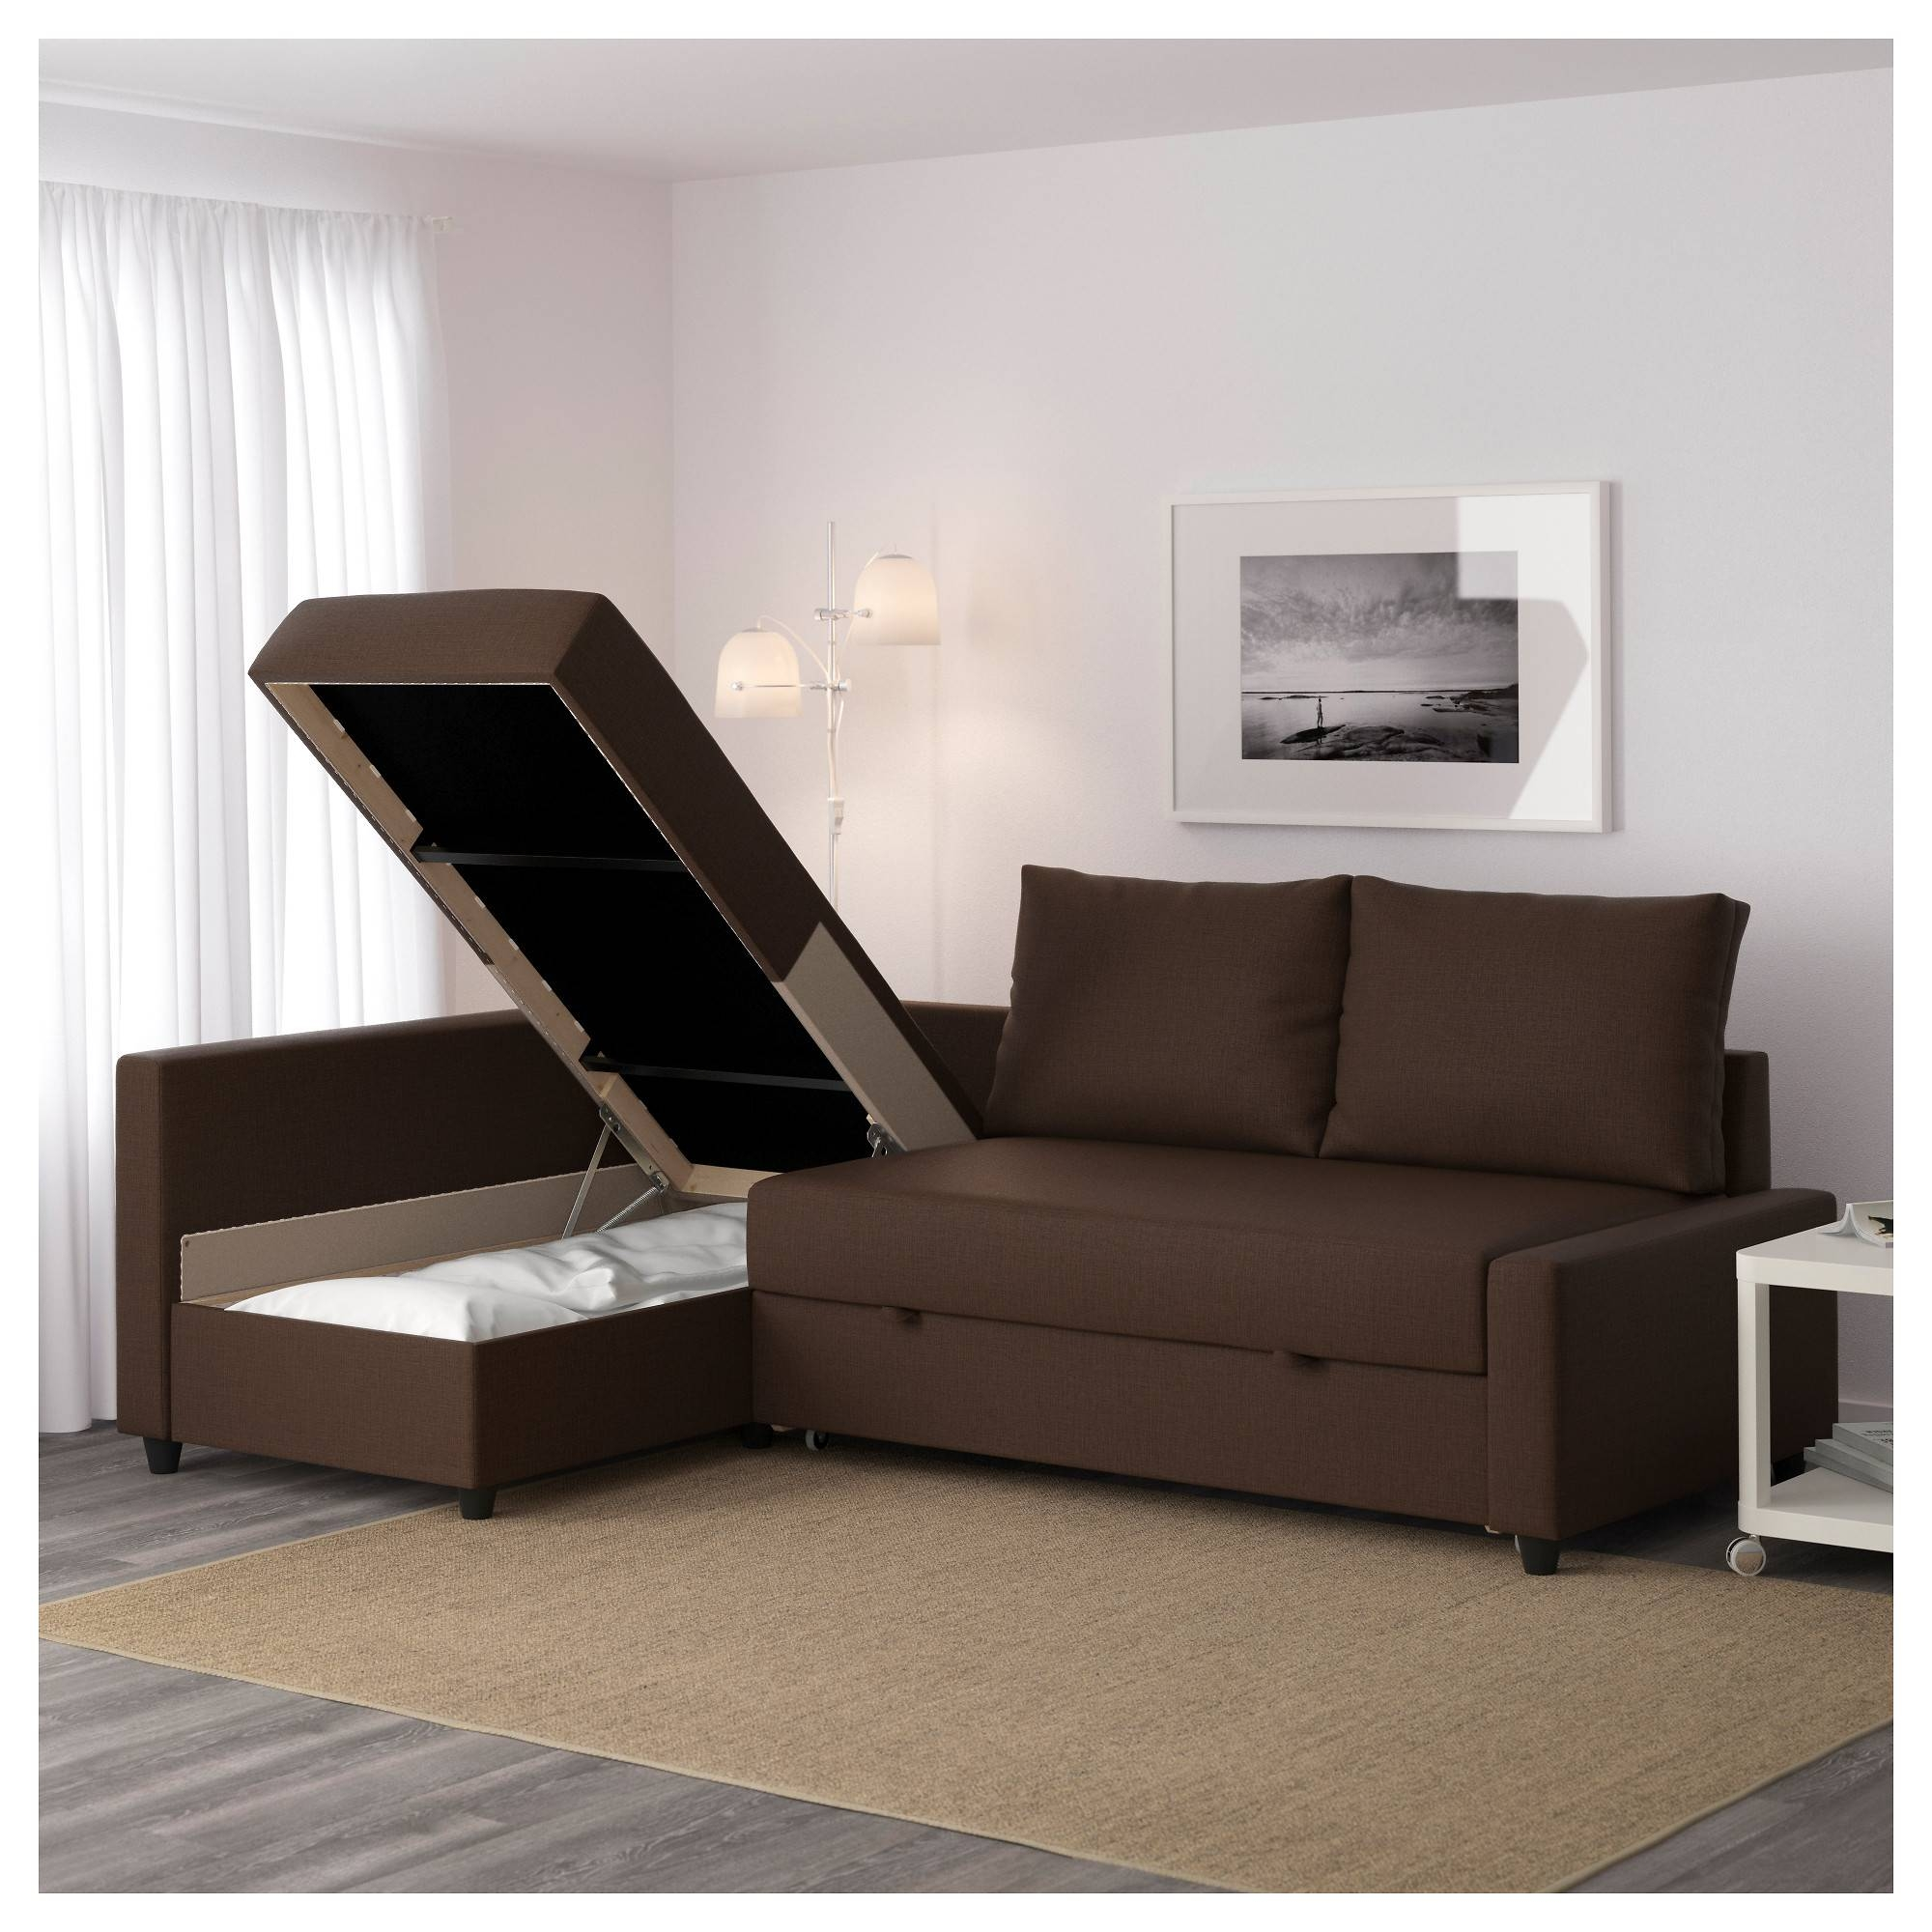 Friheten Sleeper Sectional,3 Seat W/storage - Skiftebo Dark Gray throughout Ikea Single Sofa Beds (Image 6 of 30)